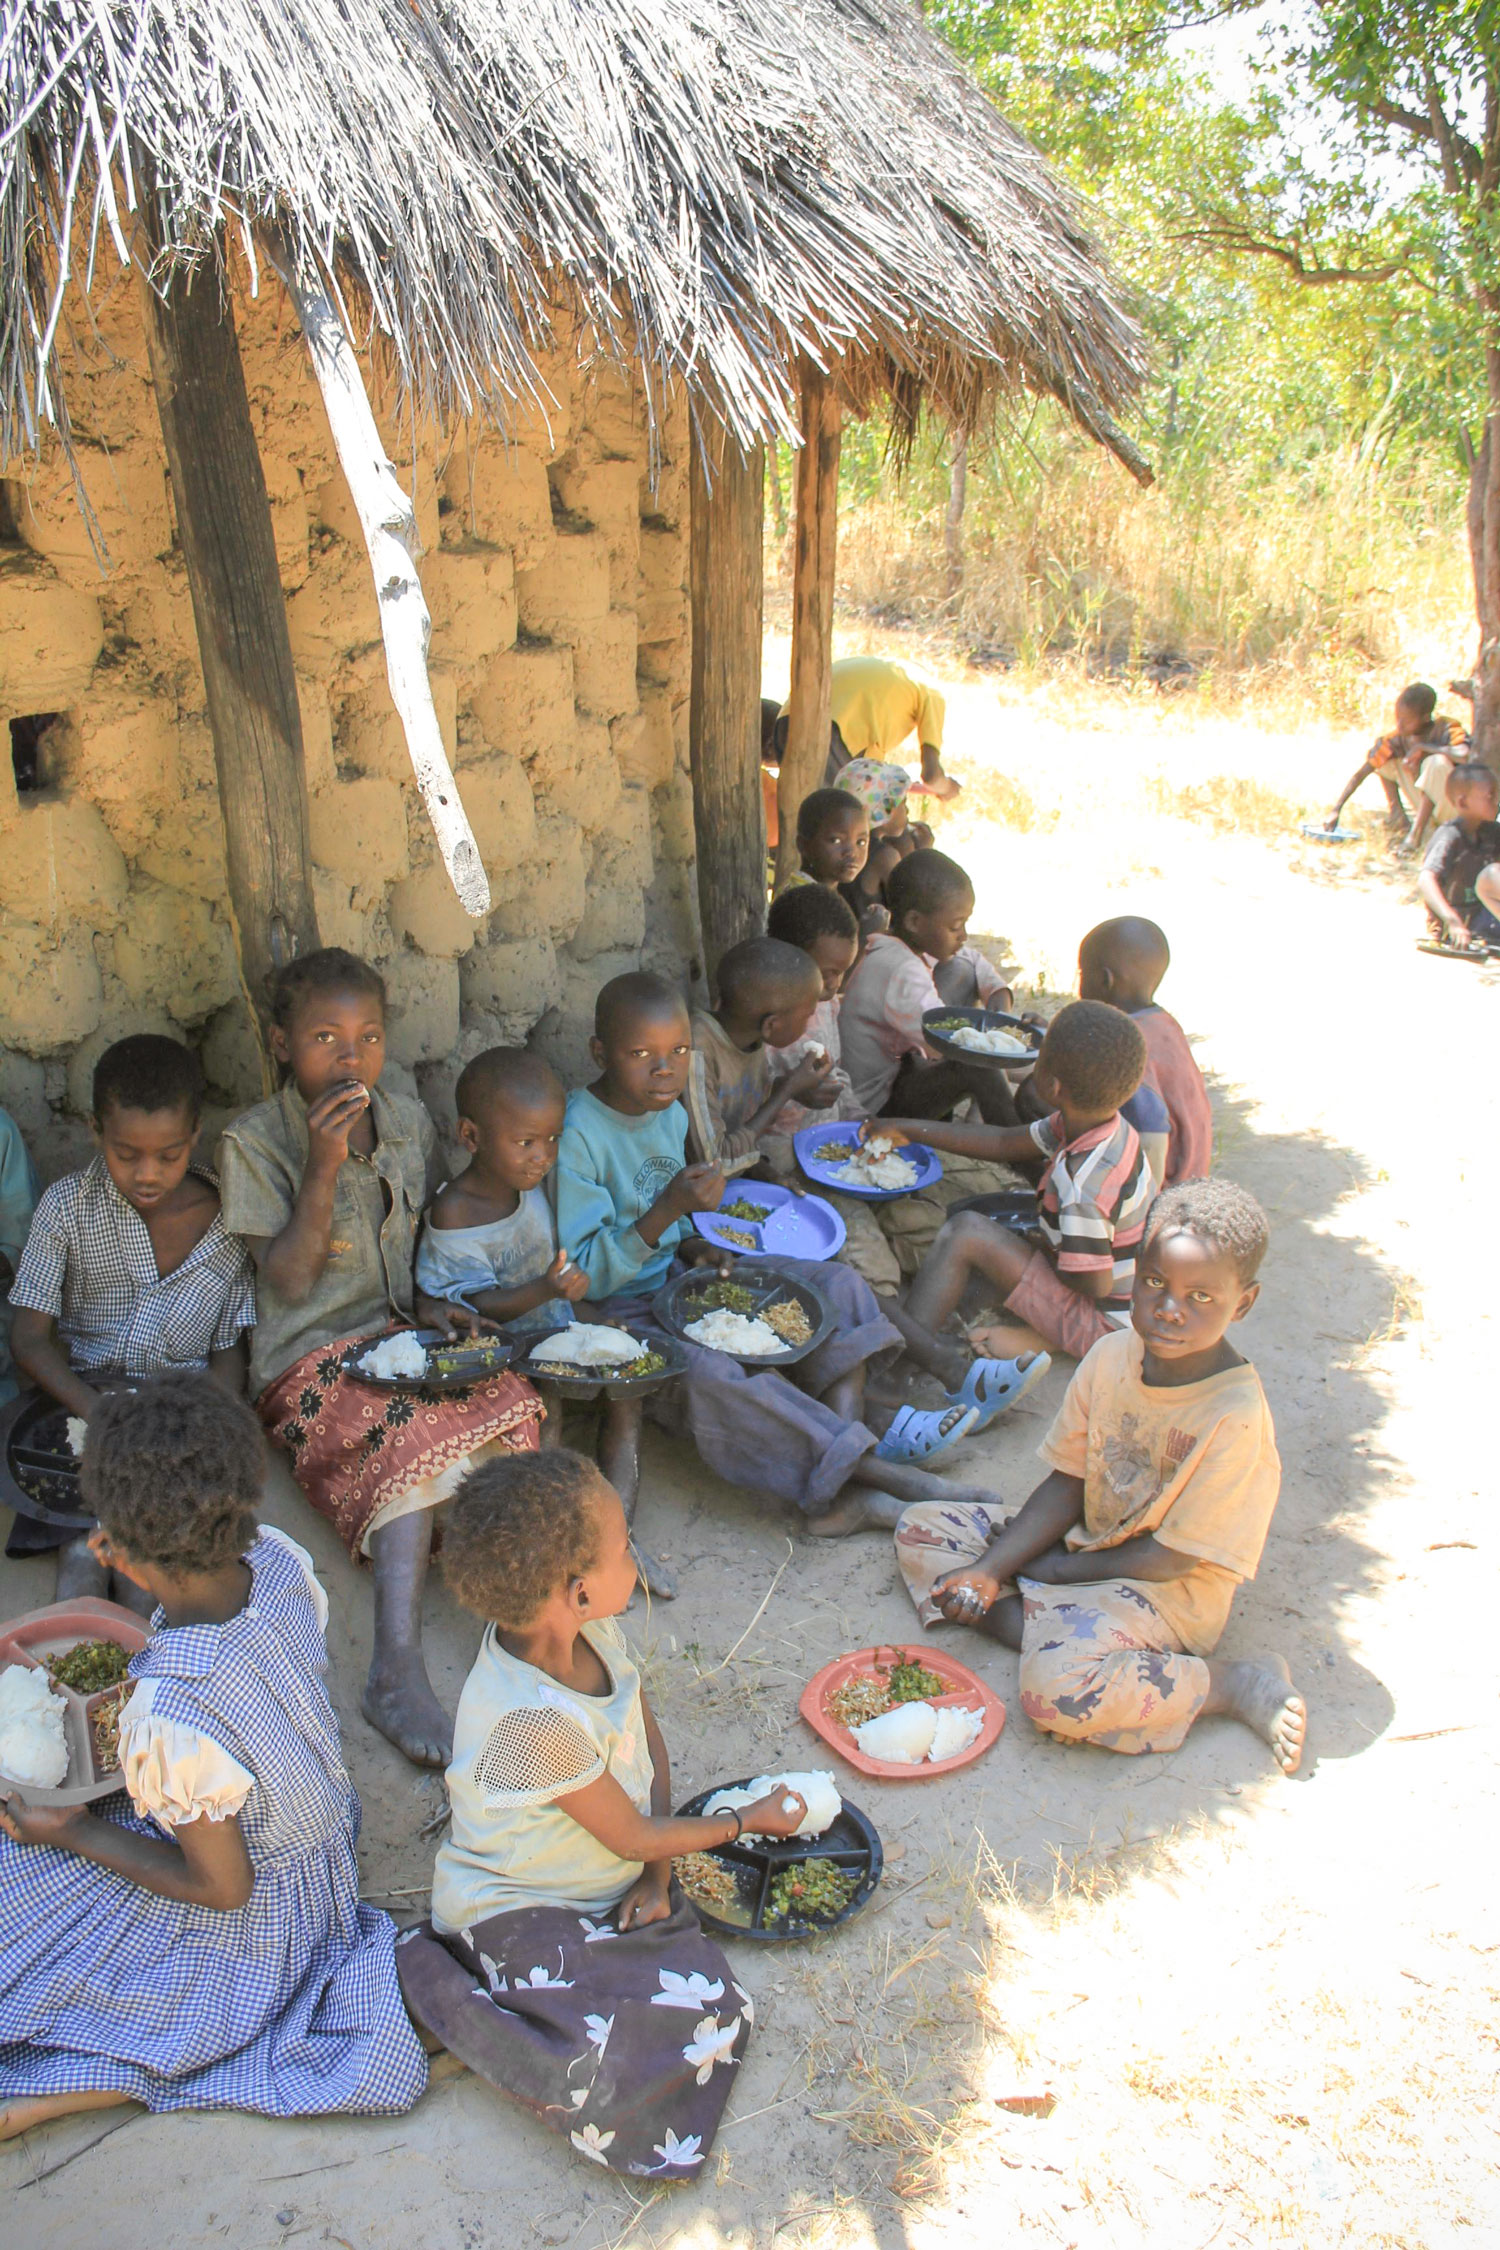 For many of the children in Chibuli, the food that they receive at the Care Point is the only meal that they will receive that day.